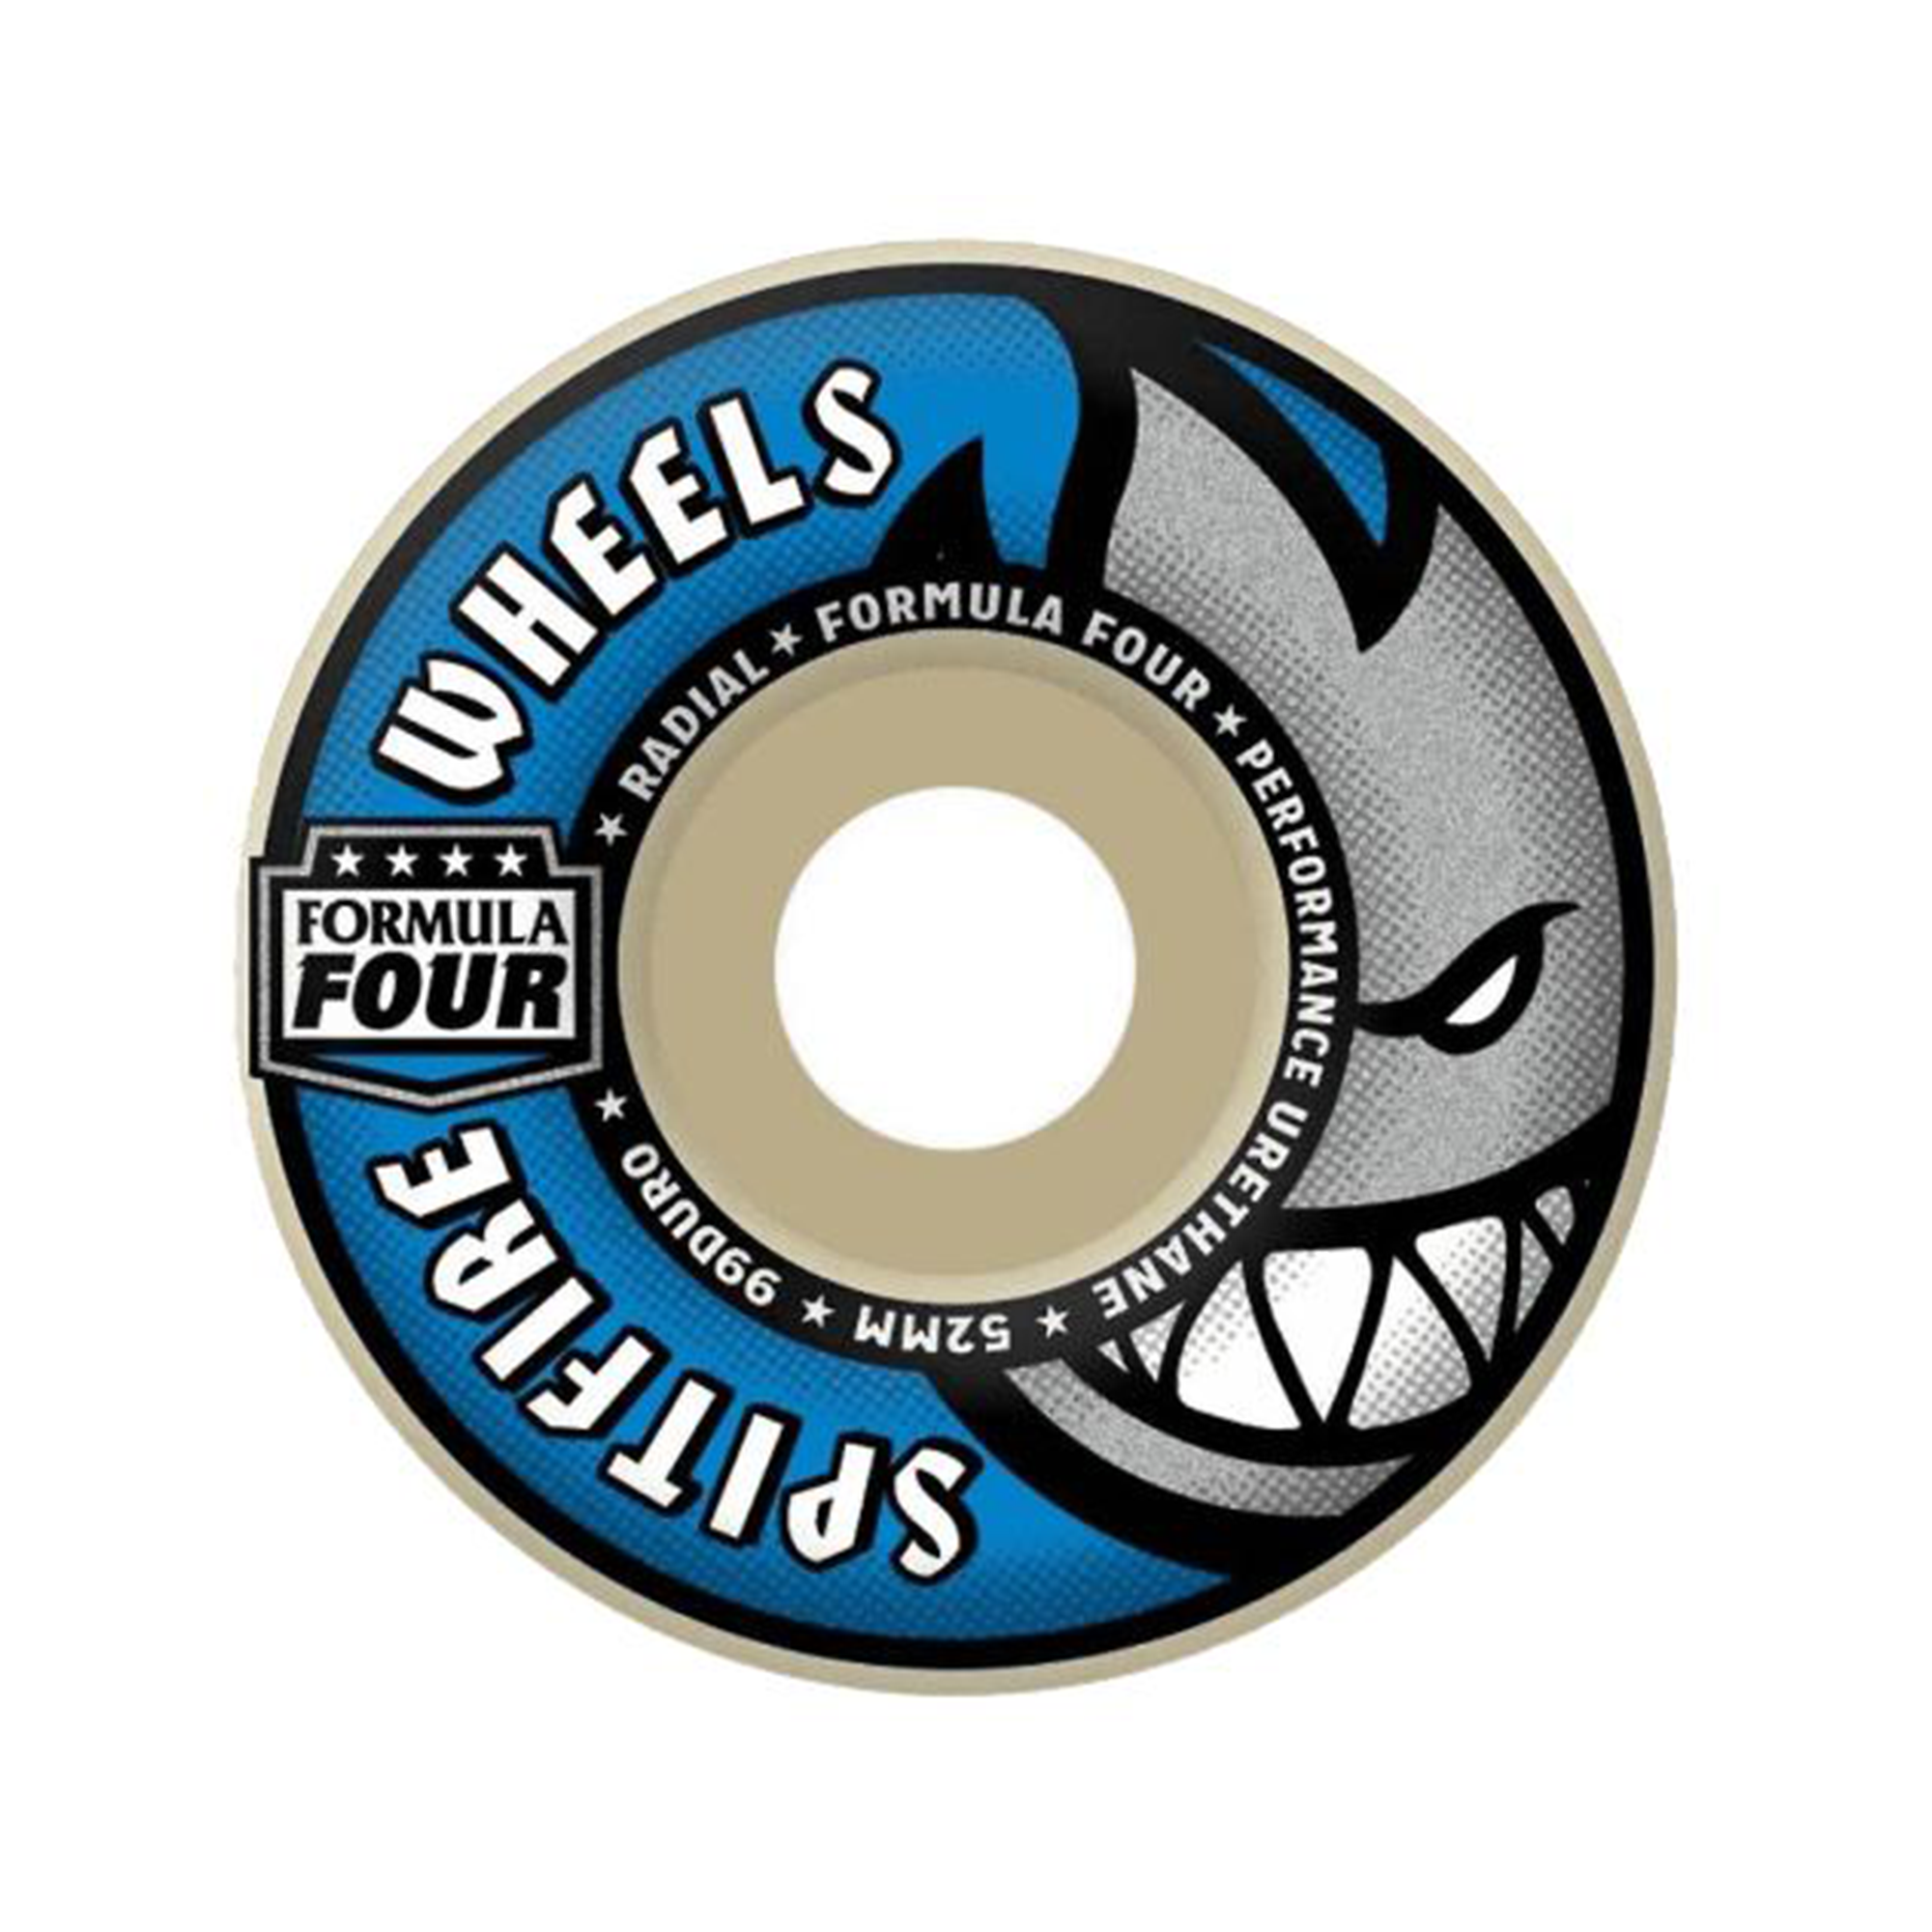 Spitfire Formula Four Radial 99 Wheels Product Photo #1